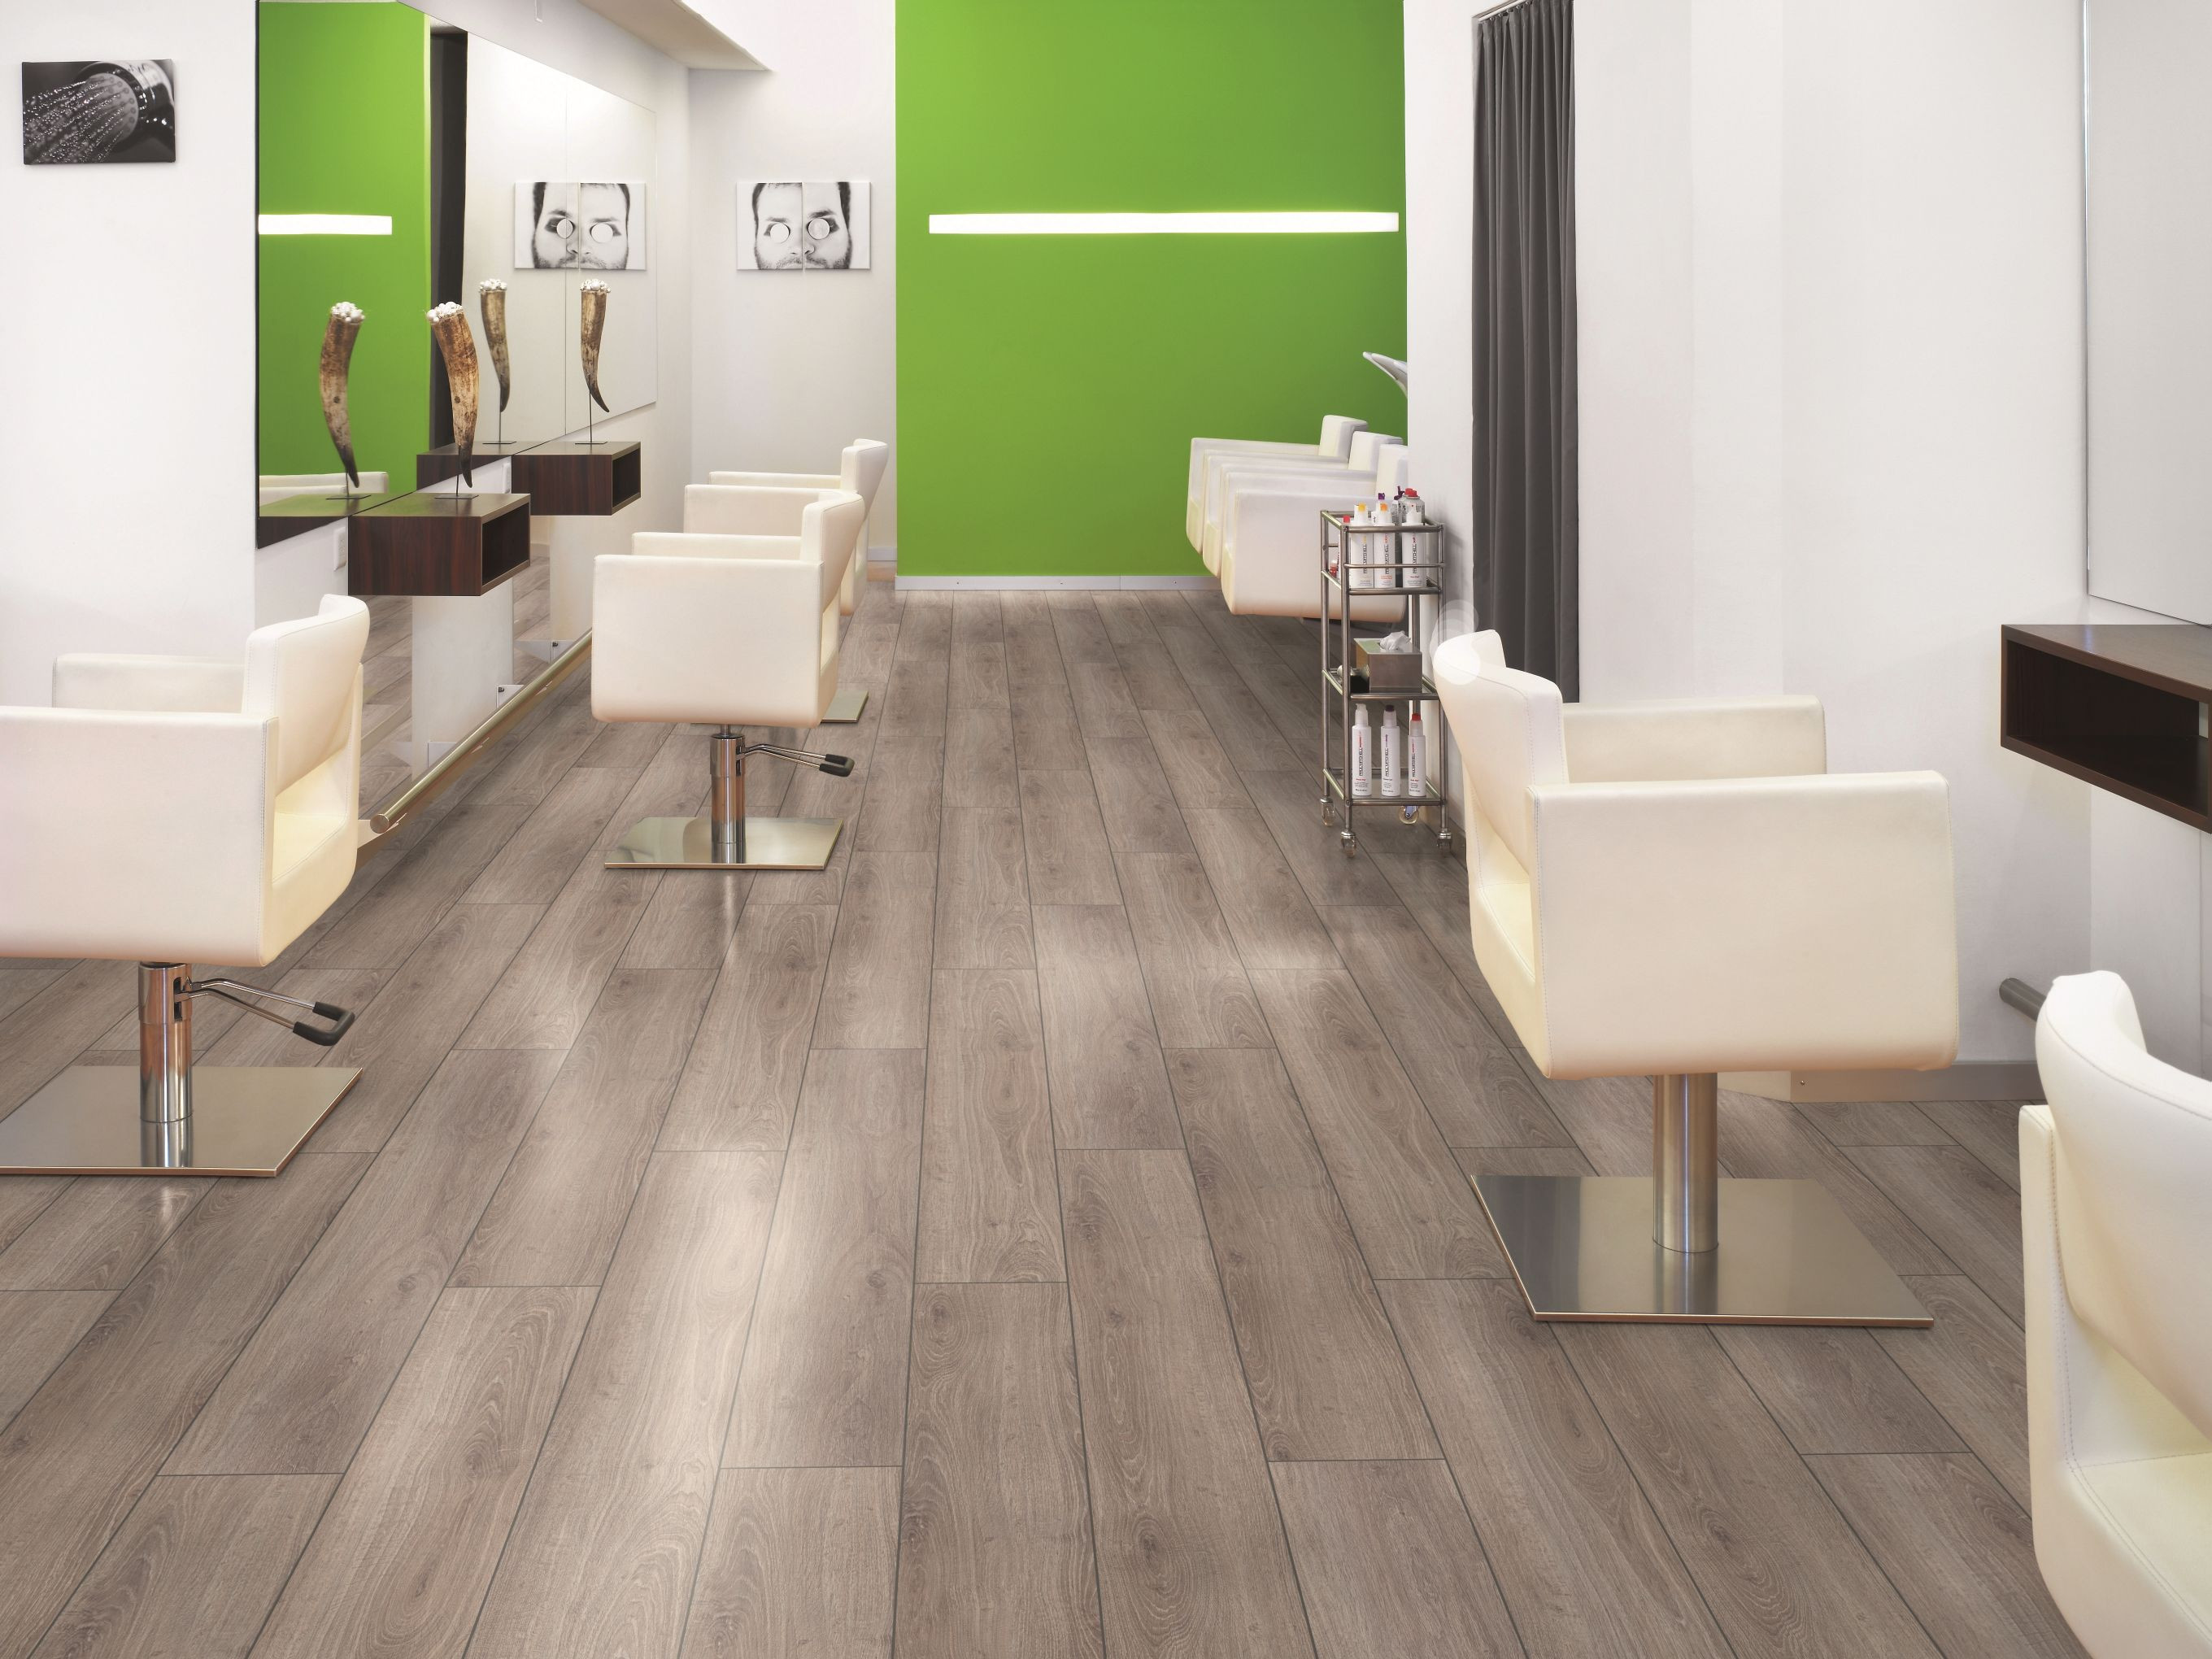 hardwood flooring dalton ga of fast floors 50 elegant hardwood floor living room graphics 50 s floor in hardwood floors 50 s fast floors evoke laminate flooring lily our new home pinterest